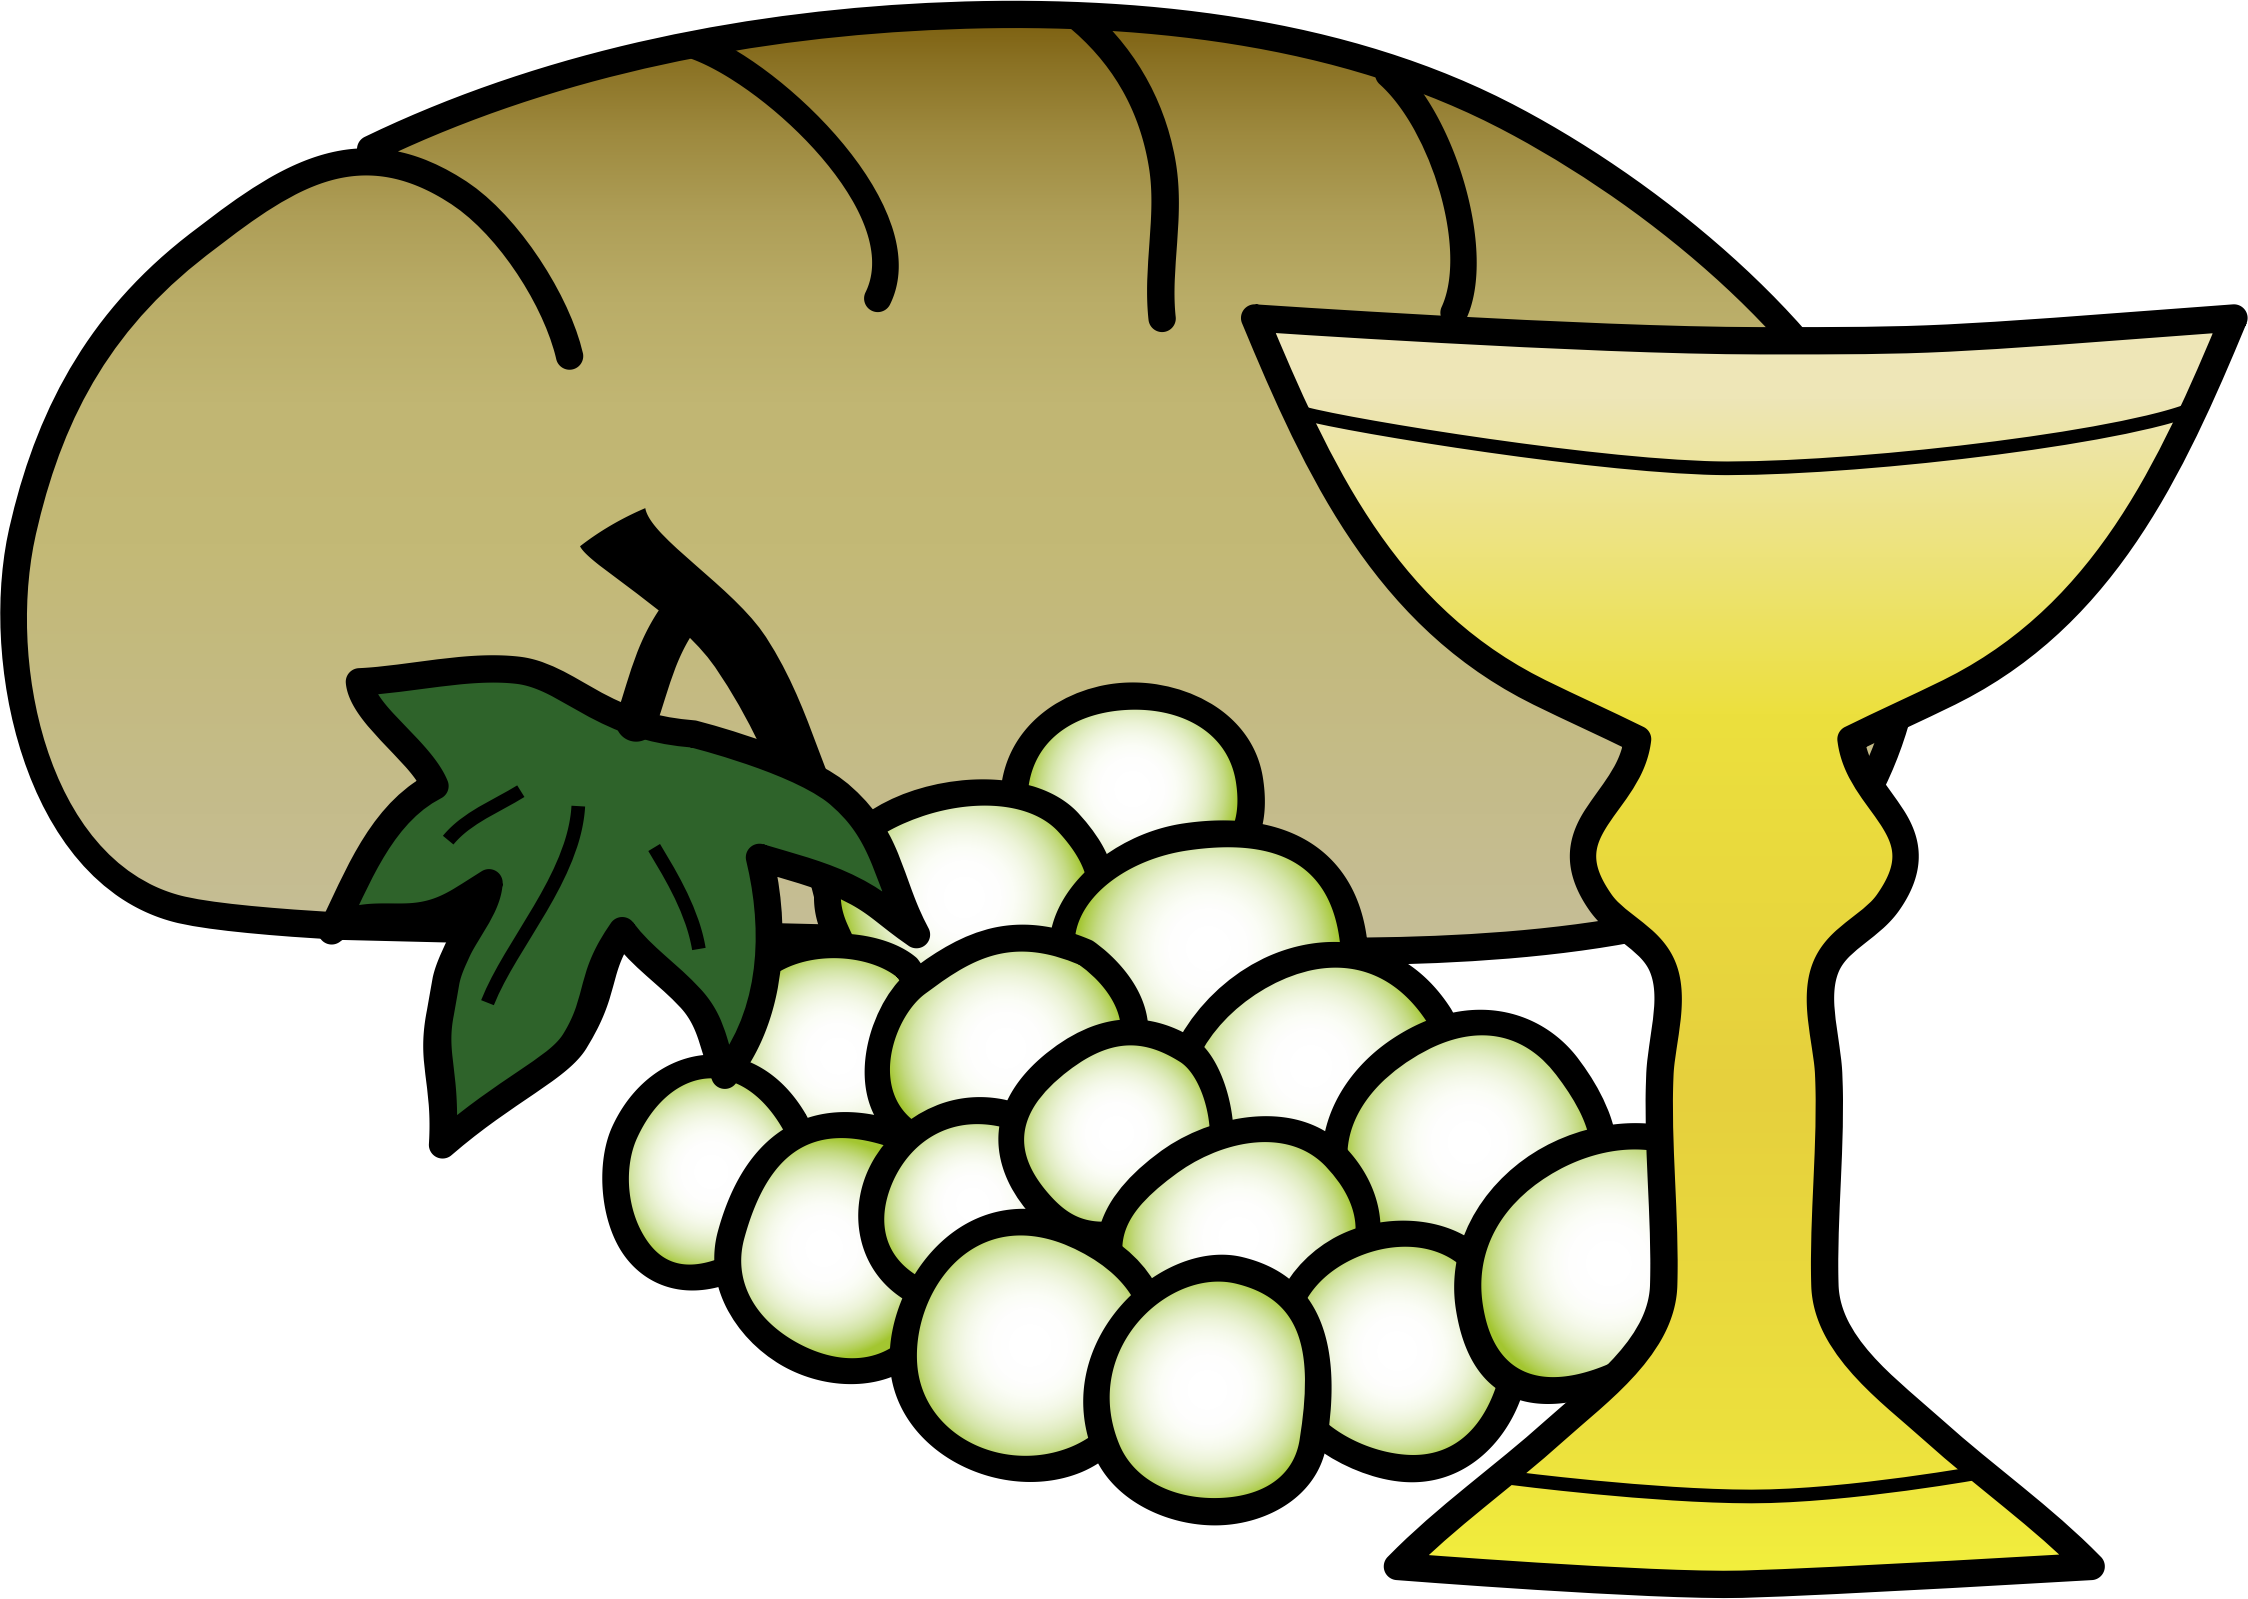 Bread and wine clipart 2 » Clipart Station.